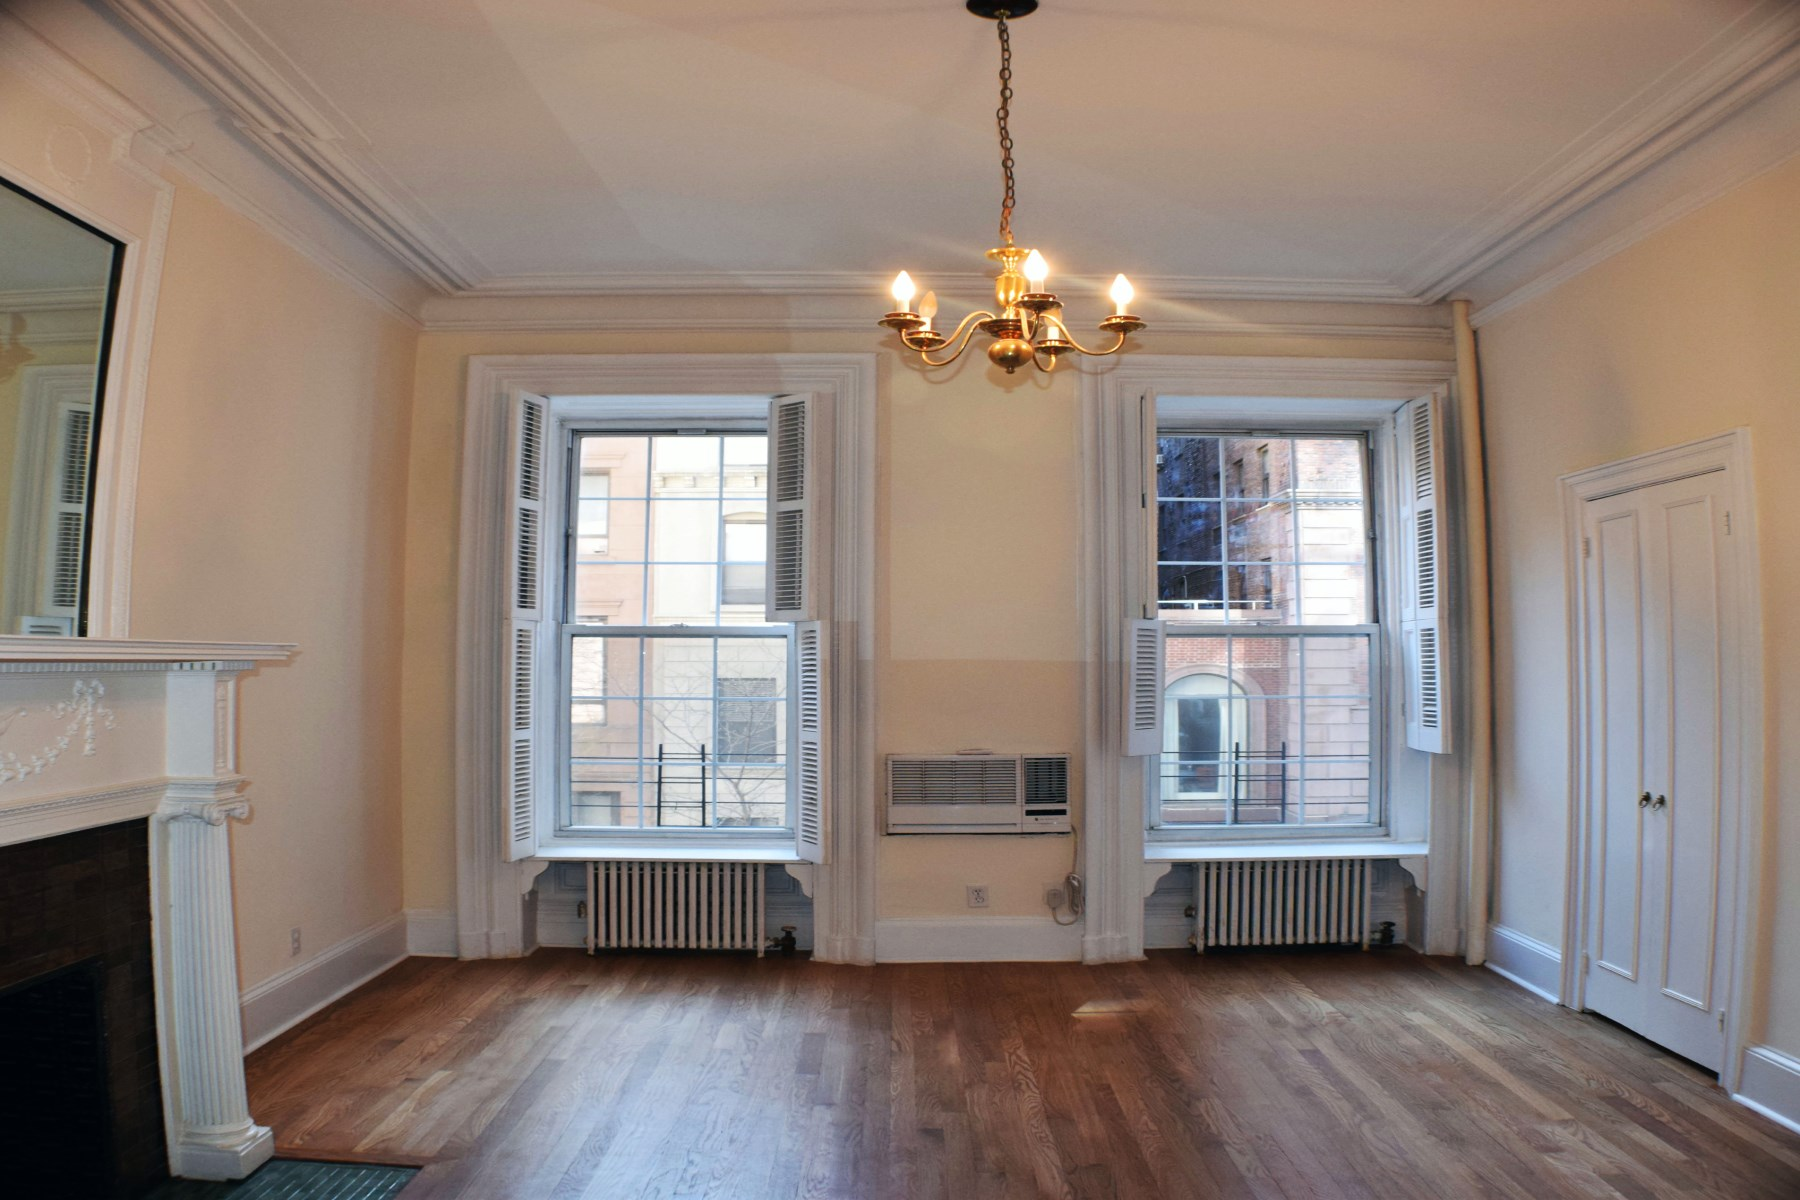 Townhouse for Rent at 25 E 38th Street Apt. 3F 25 East 38th Street Apt 3F New York, New York, 10016 United States